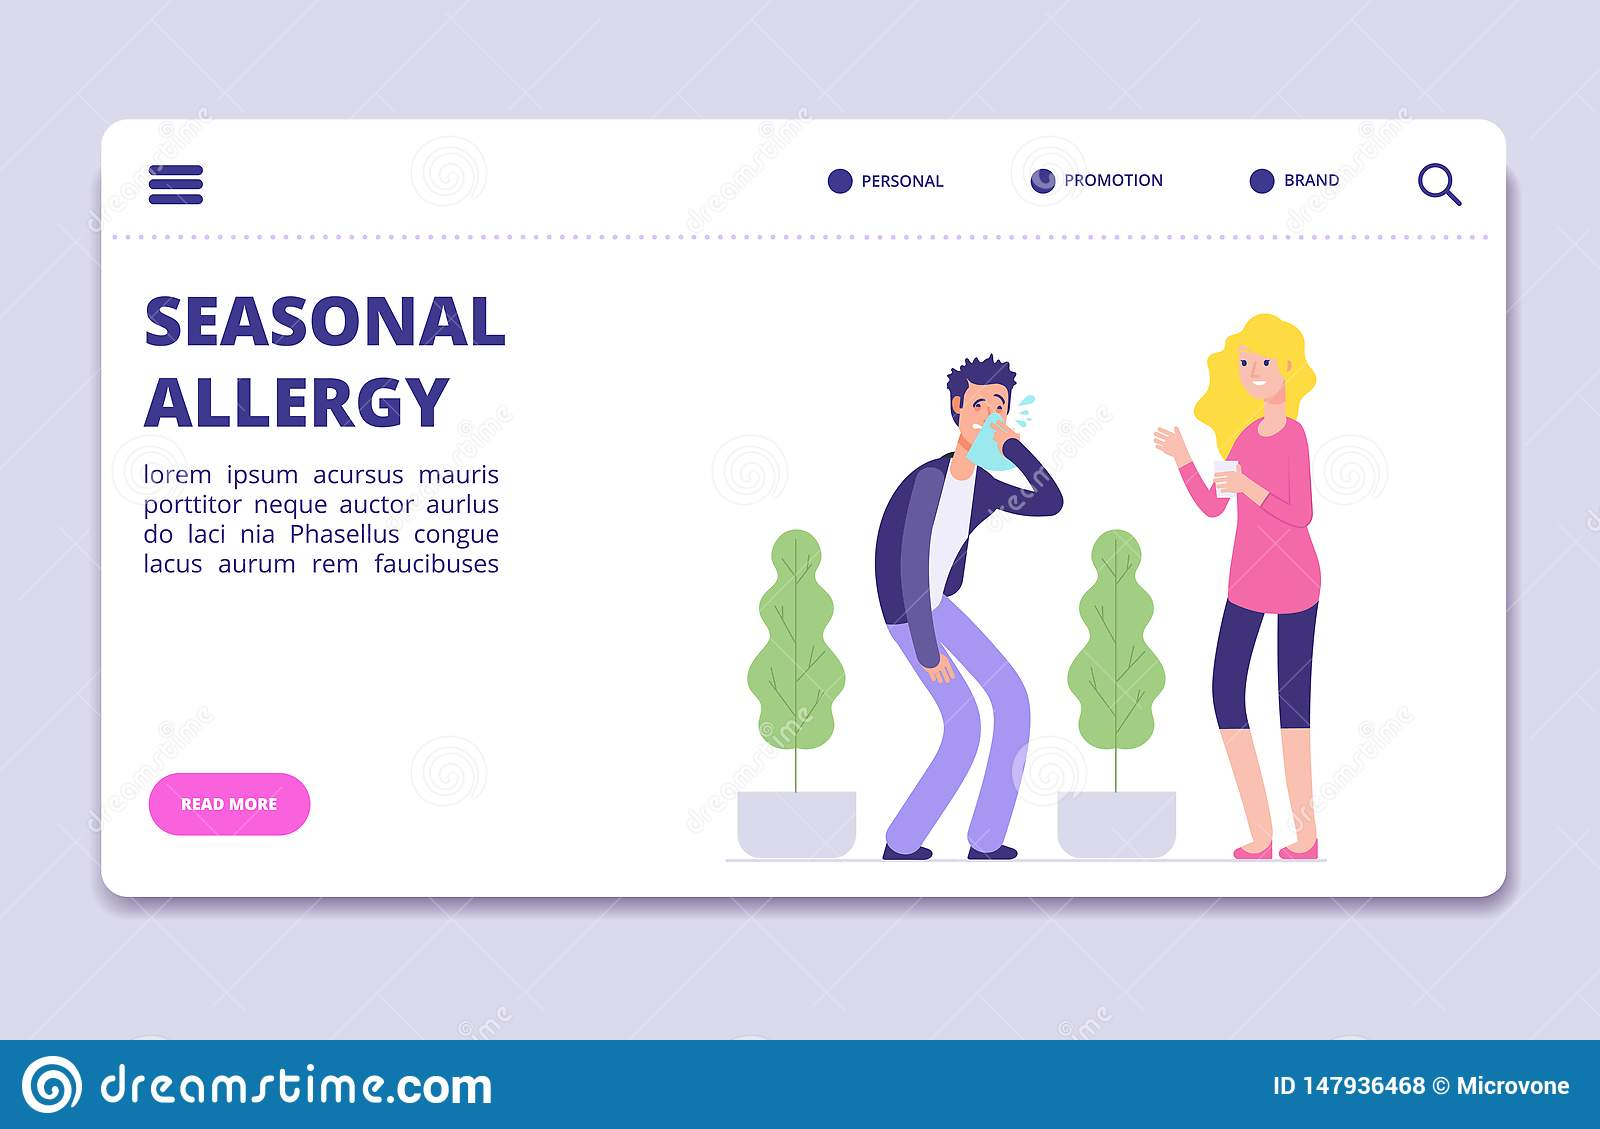 Seasonal allergy vector illustration. Office man with allergy symptoms - health landing page, banner template